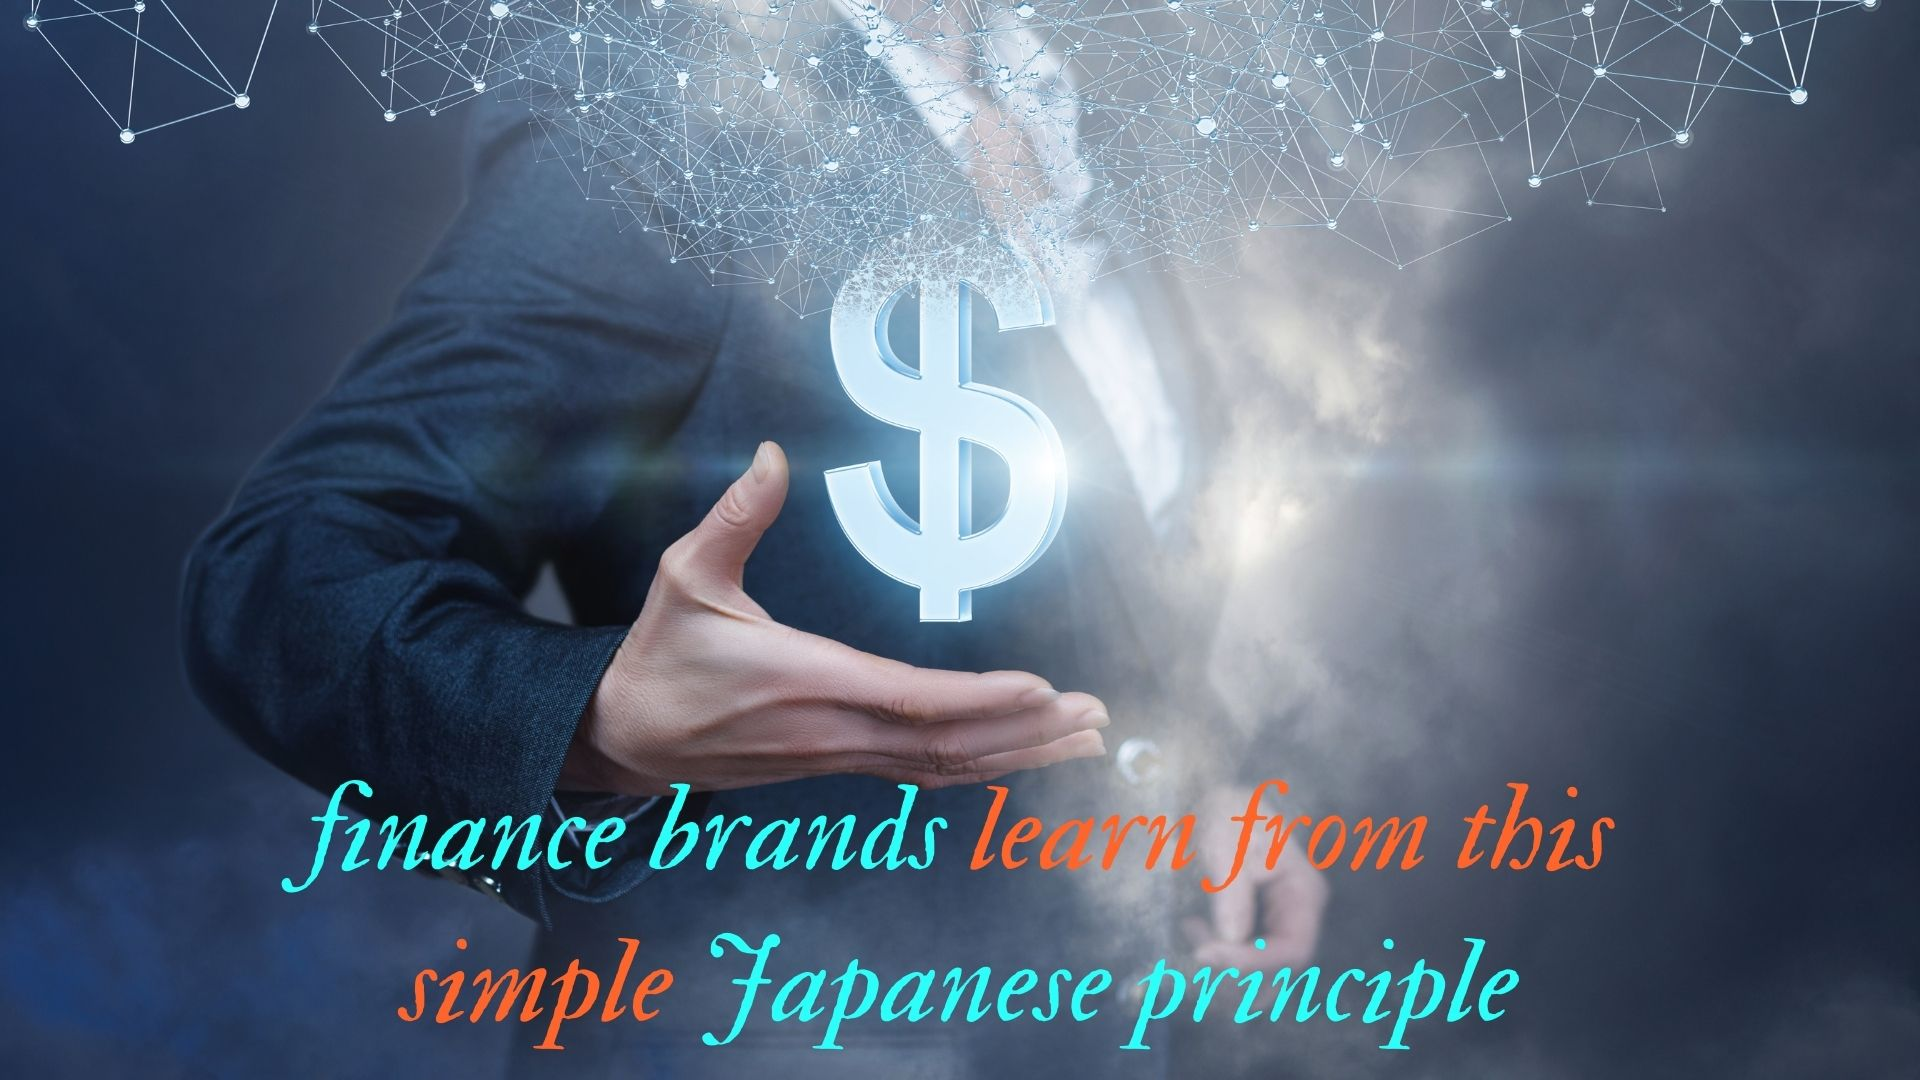 What can finance brands learn from this simple Japanese principle?